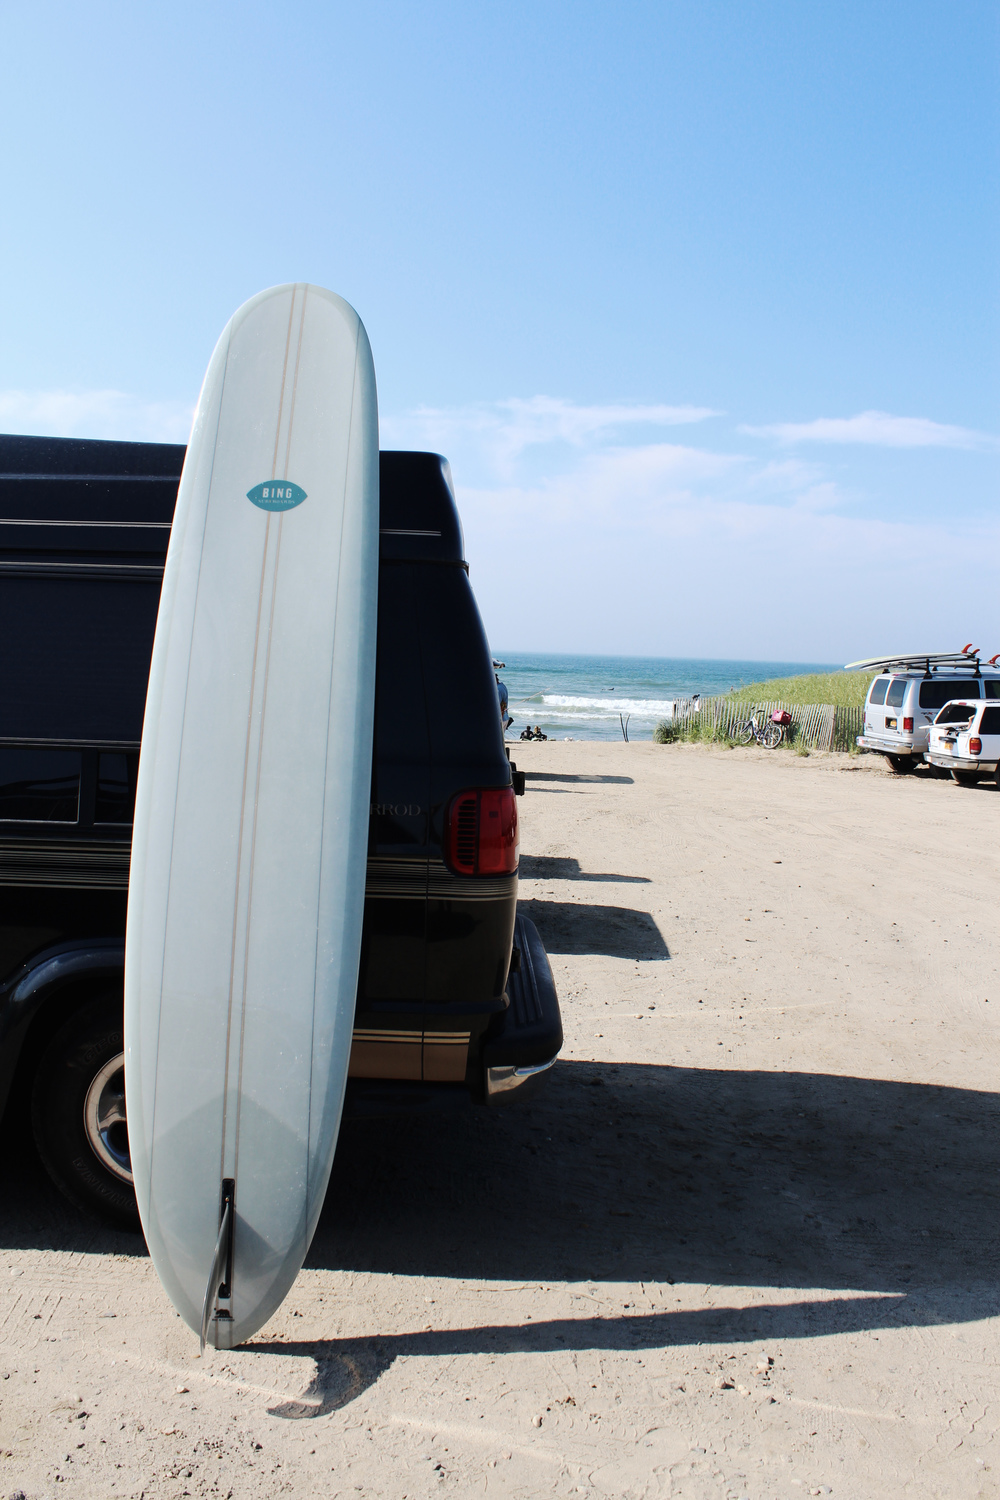 wave provocateur van surfing montauk ditch plains